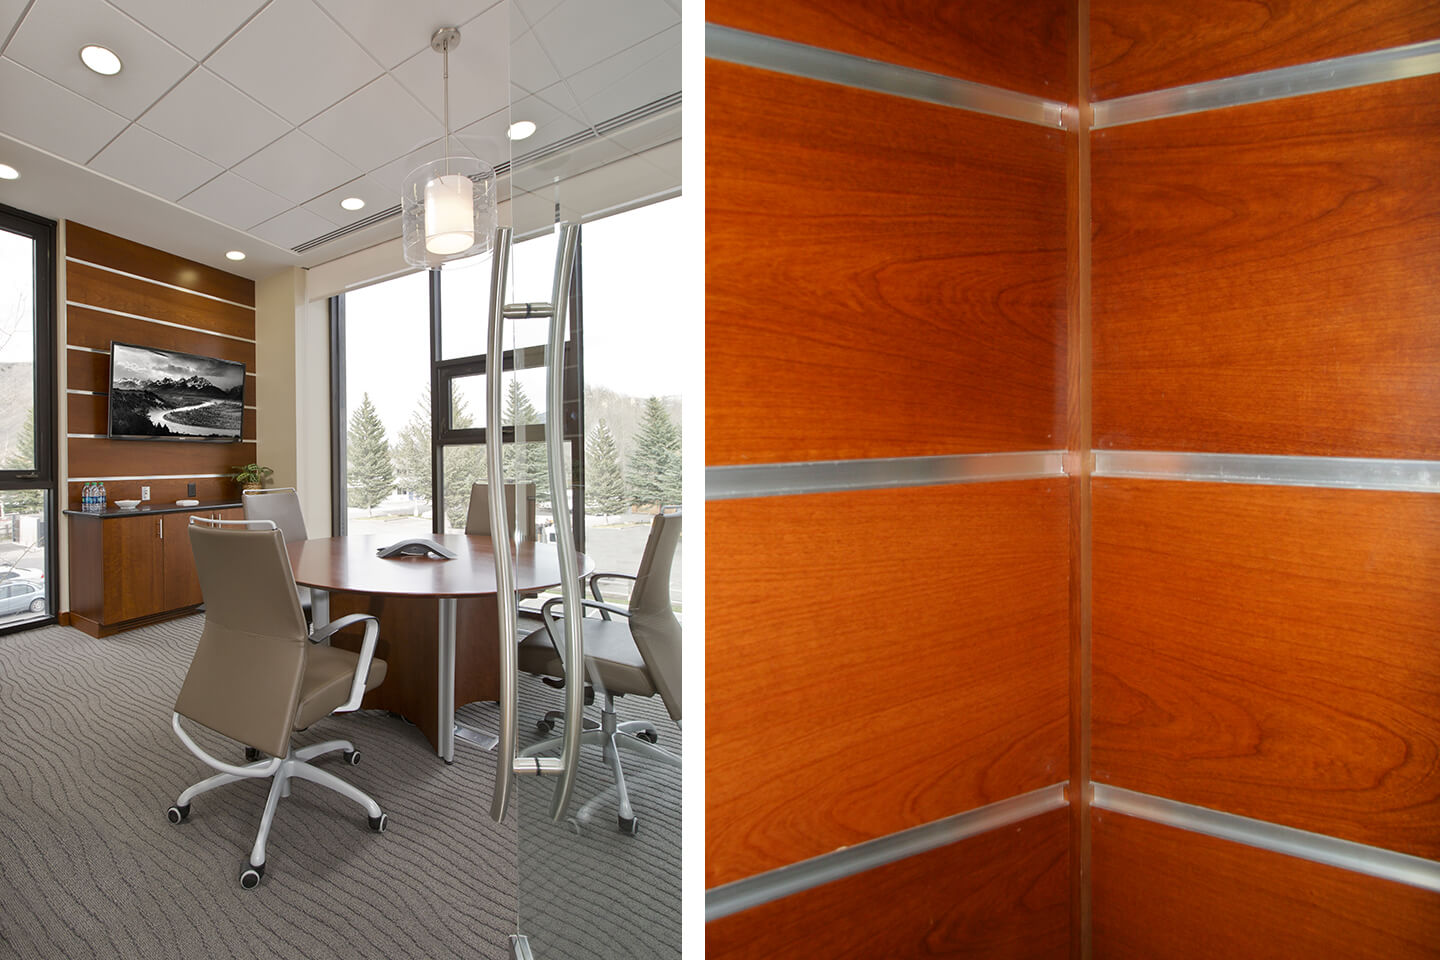 Meeting area and engineered wood paneling detail